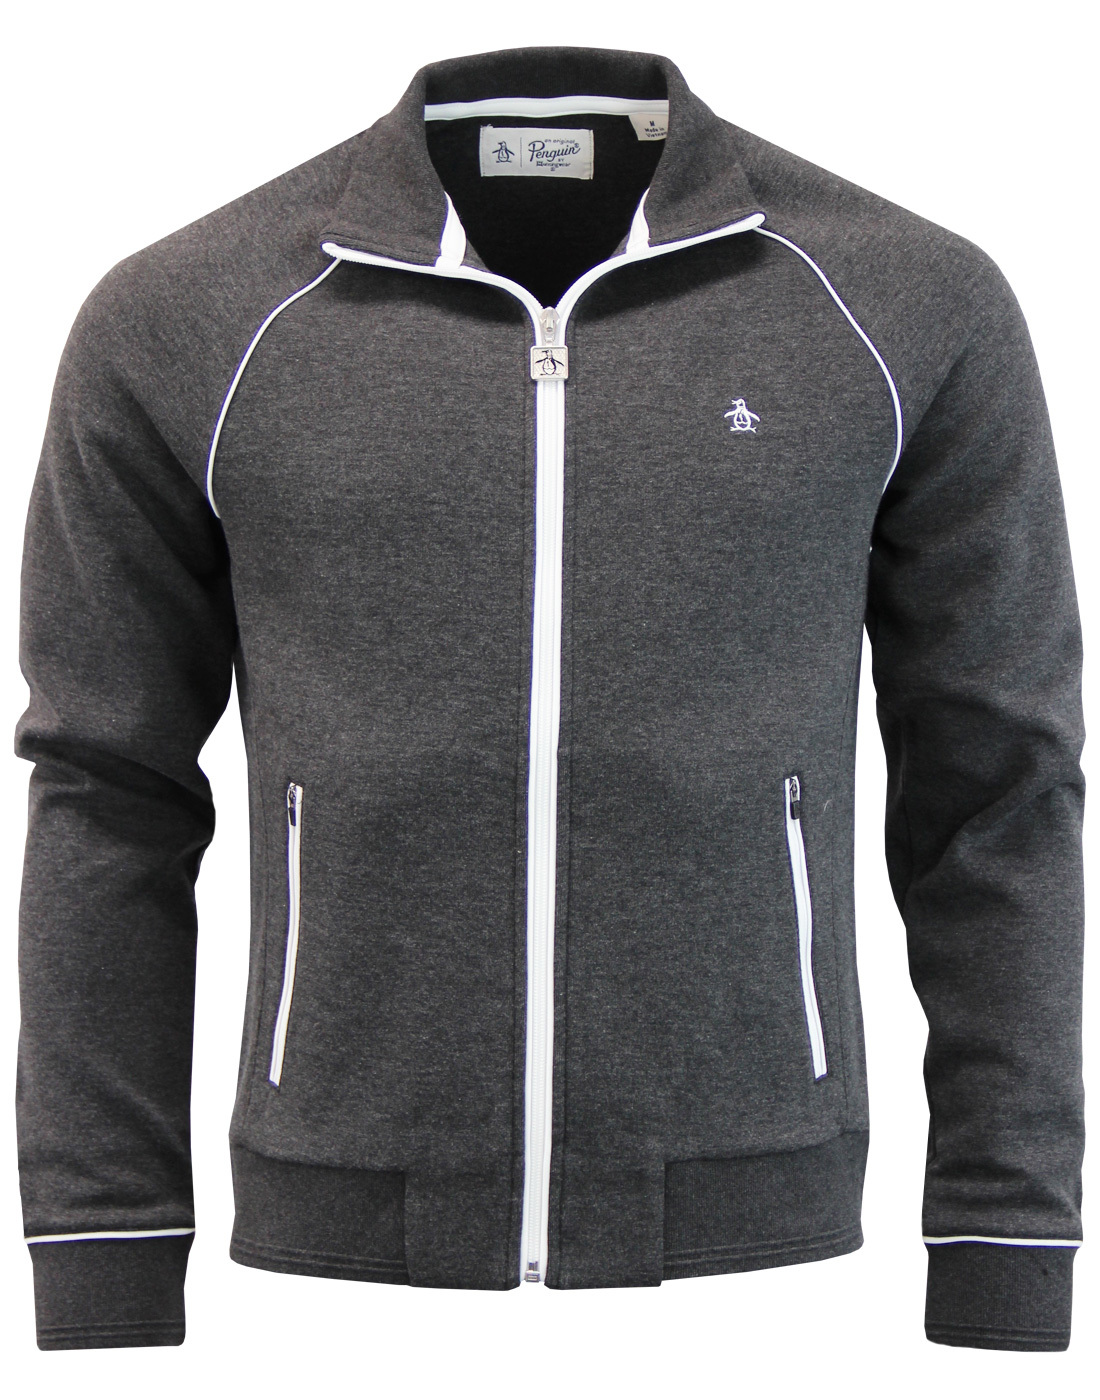 Earl ORIGINAL PENGUIN Retro 70s Piping Track Top